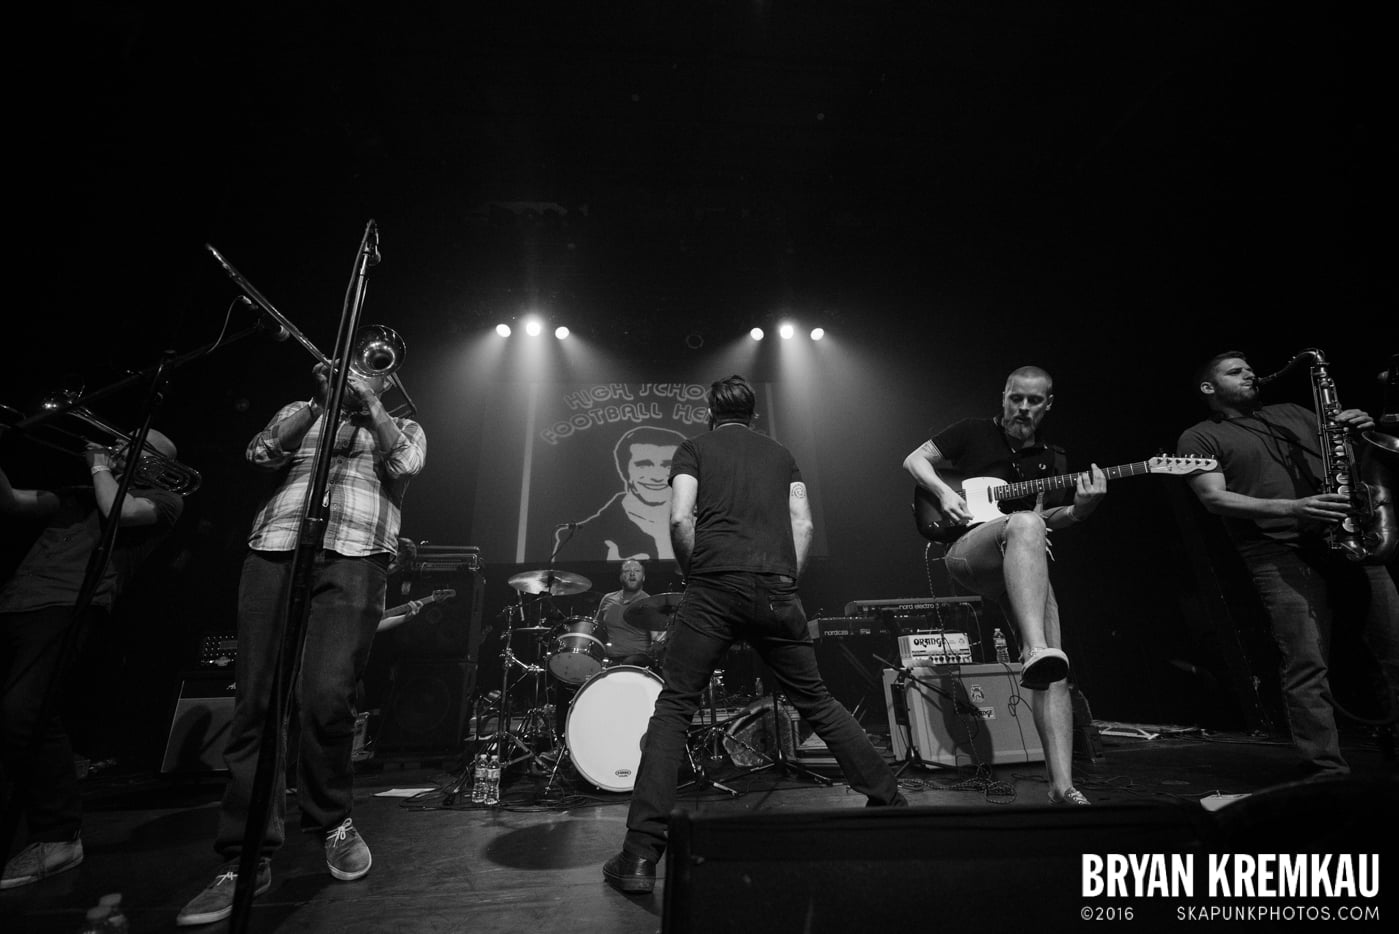 High School Football Heroes @ Gramercy Theatre, NYC - 10.6.16 (13)